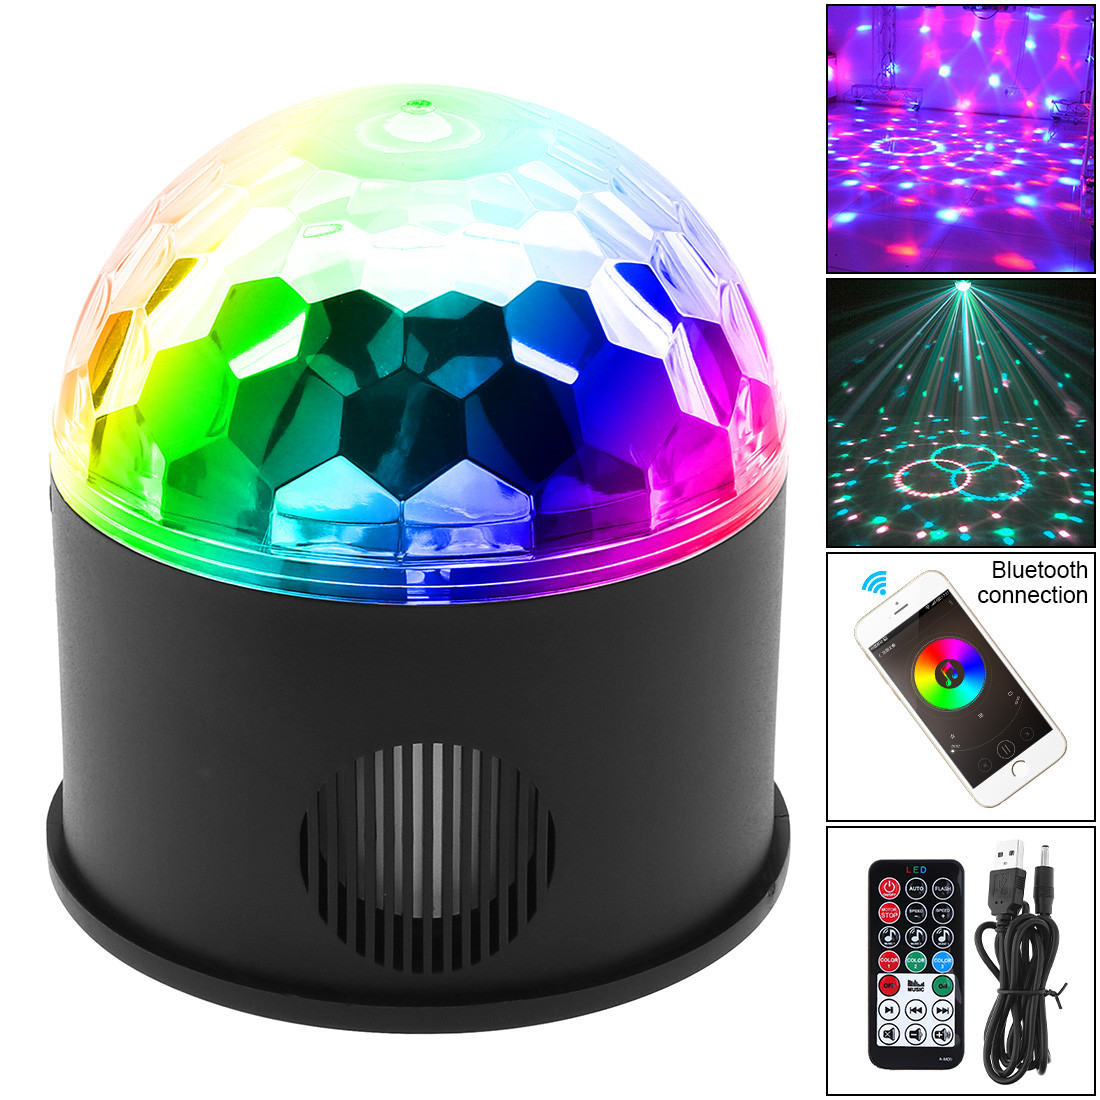 Wireless Bluetooth Speaker 9W 9 Colors Magic Ball Projector LED Stage Light Lamp Sound Control for Christmas Party DJ KTV Disco